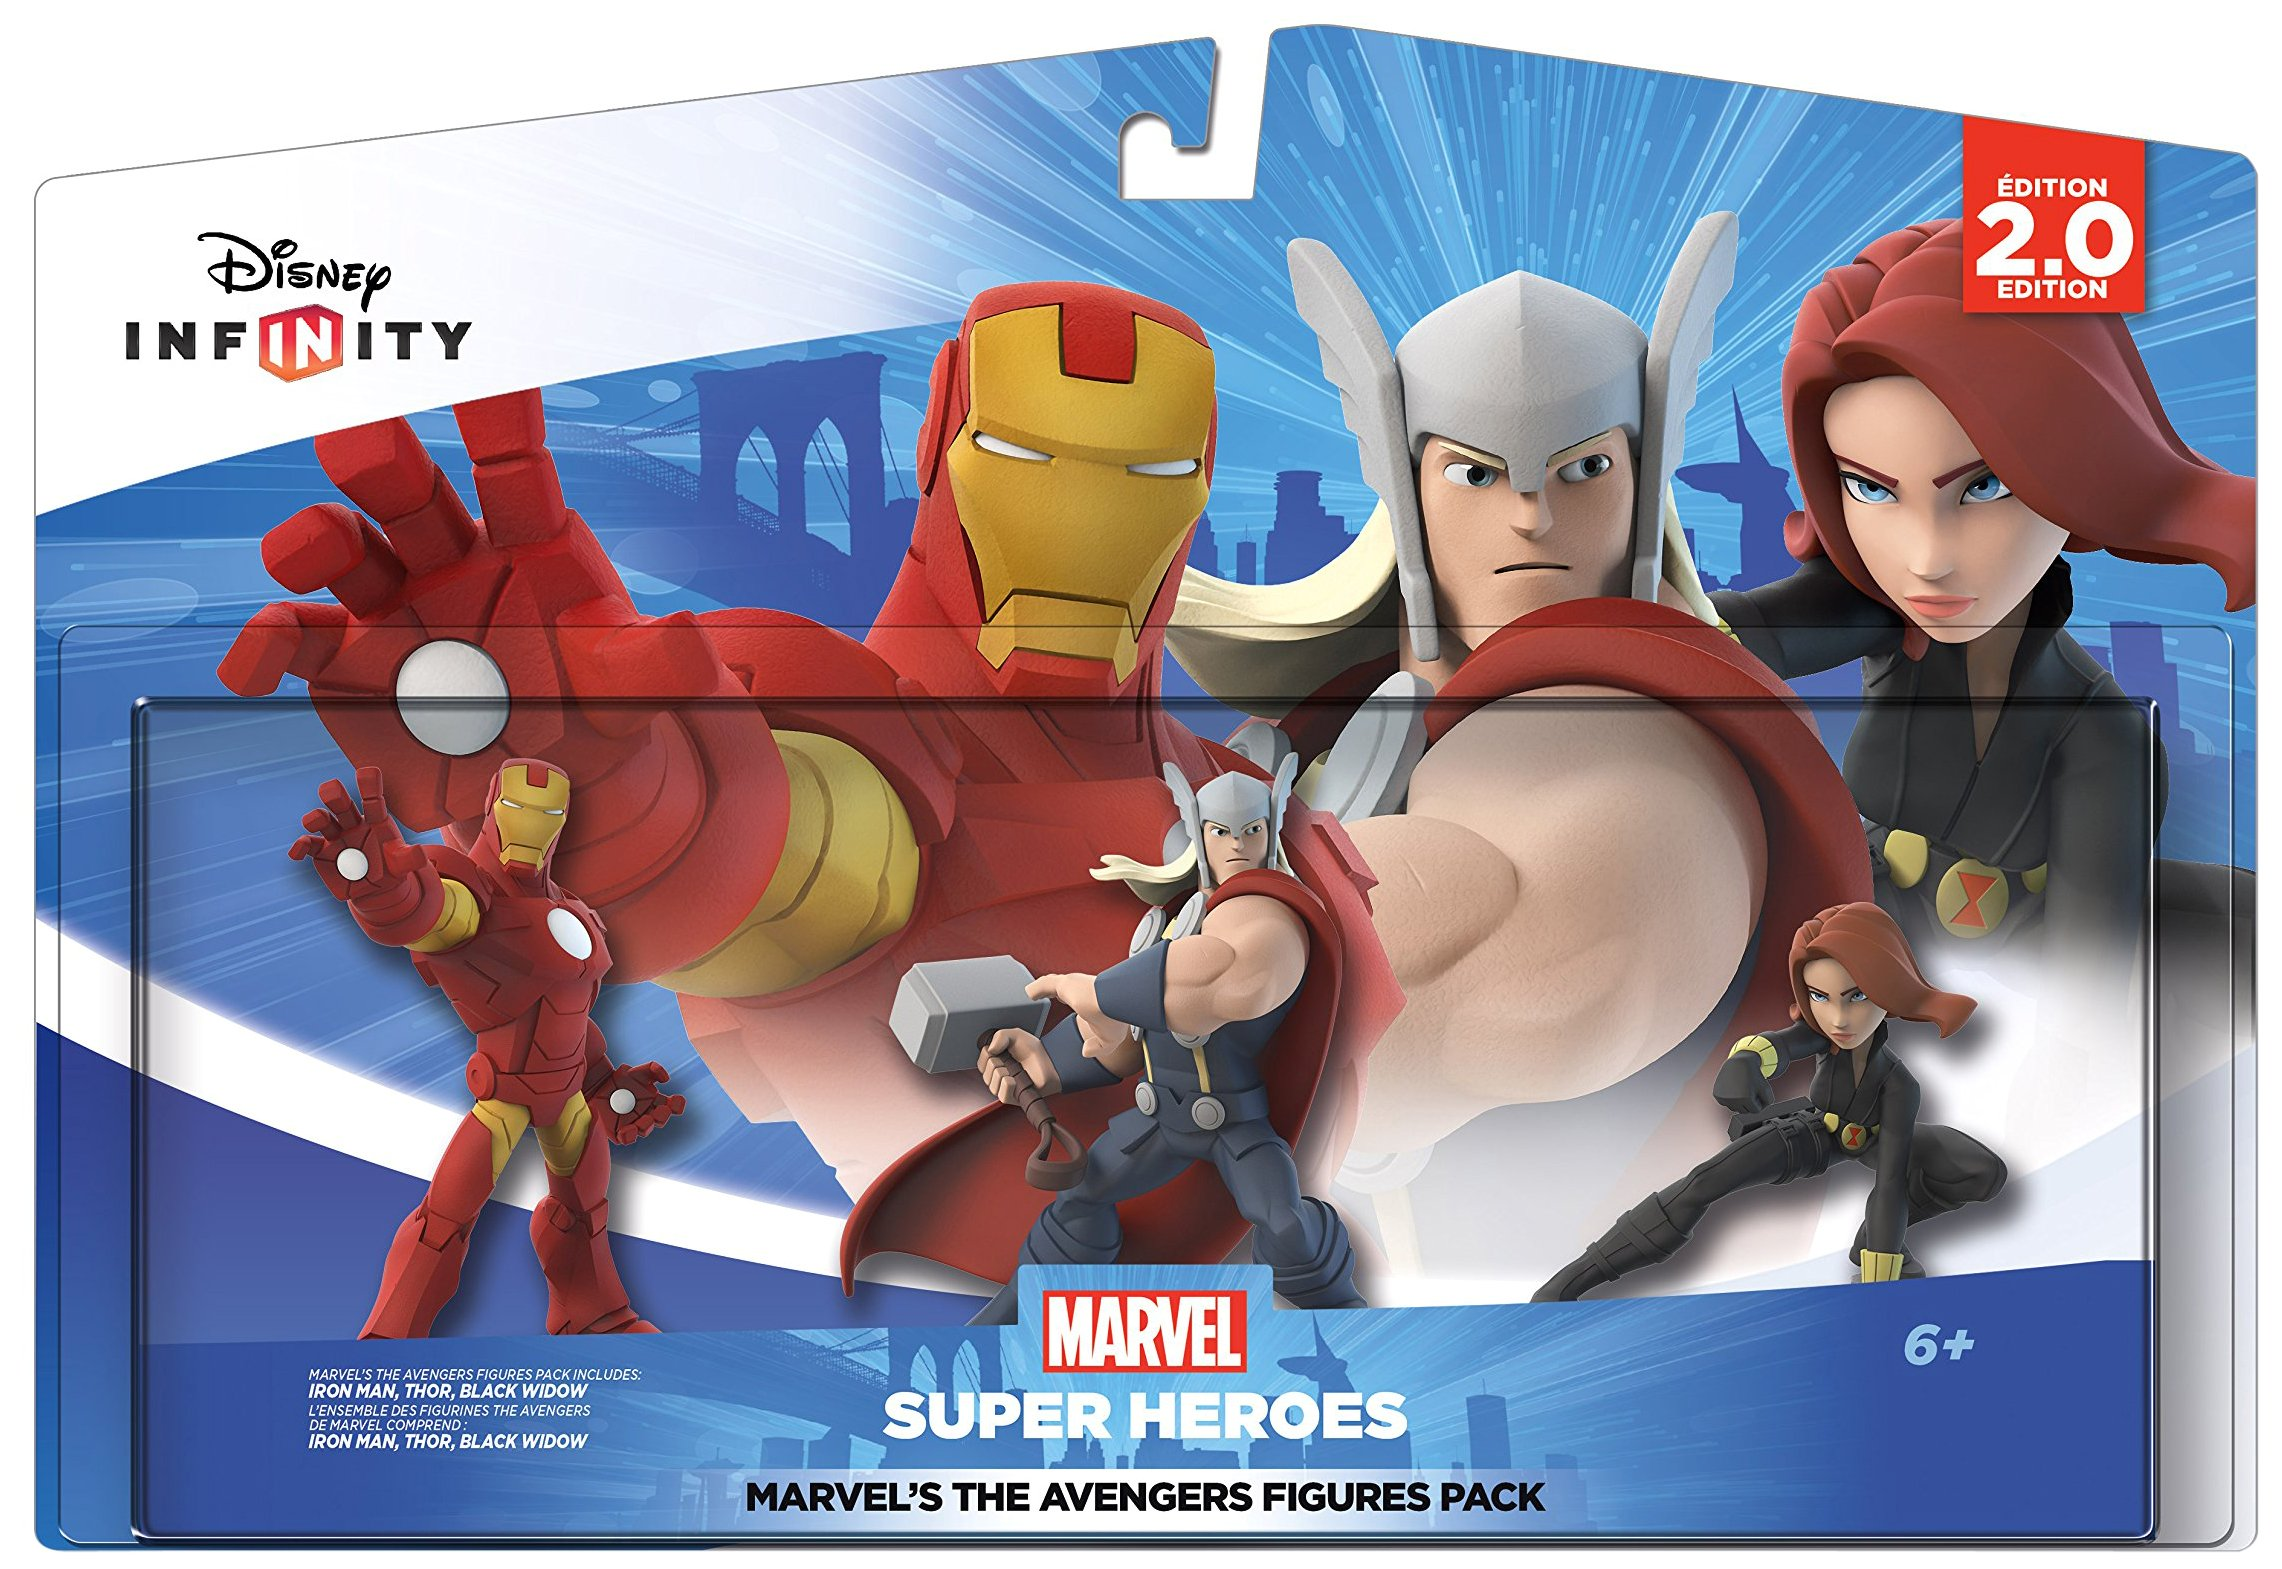 Disney Infinity: Marvel Super Heroes (2.0 Edition) MARVEL'S The Avengers Figure Pack - Not Machine Specific by Disney Infinity (Image #1)